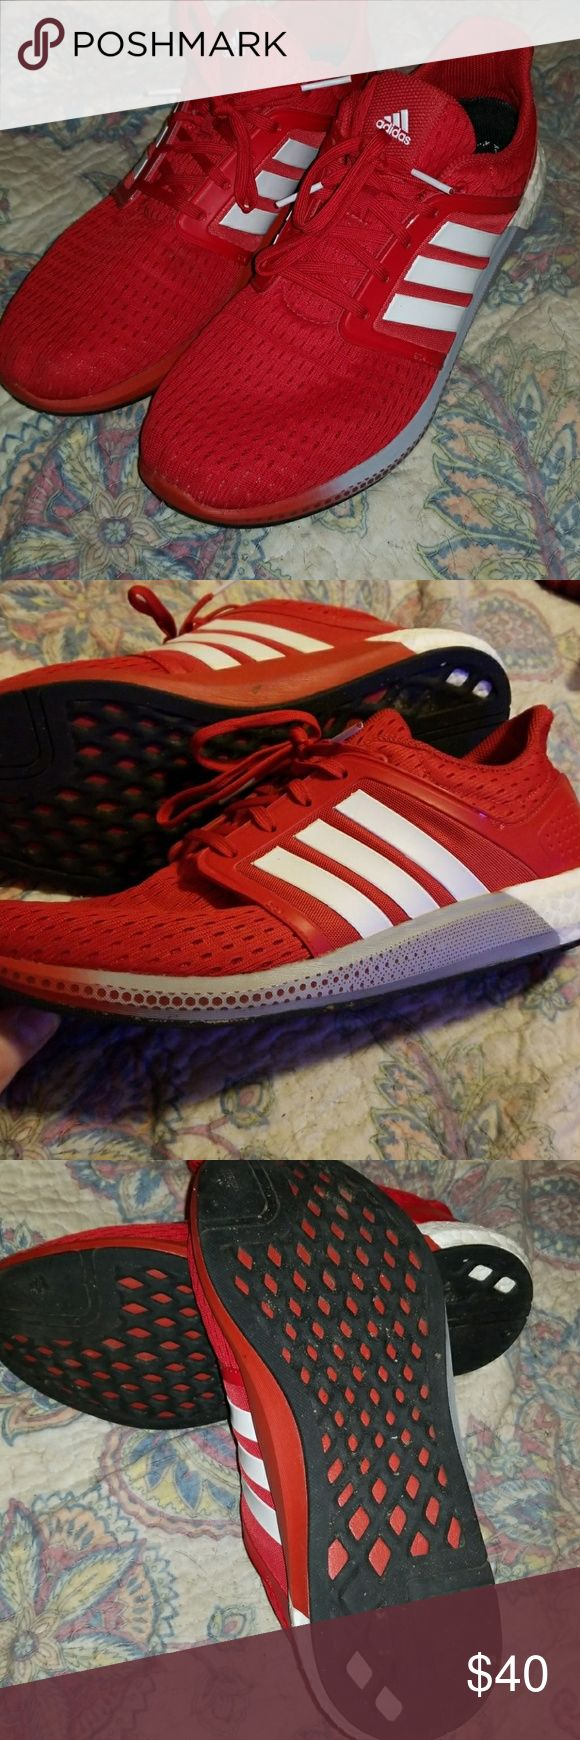 Adidas Solar Boost Gently worn Adidas Solar Boost men's shoes size 11.5 adidas Shoes Athletic Shoes